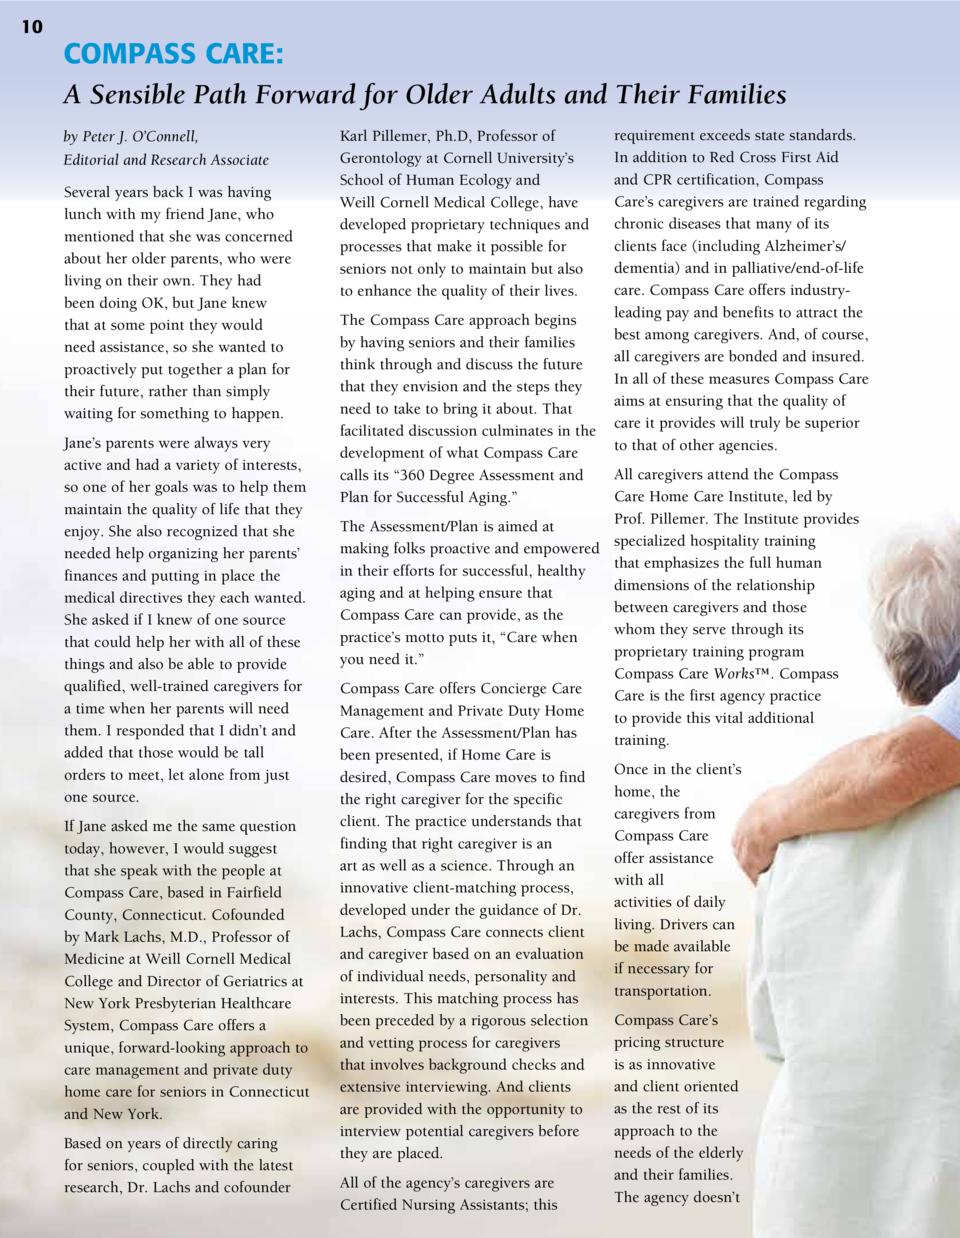 10  COMPASS CARE  A Sensible Path Forward for Older Adults and Their Families by Peter J. O   Connell, Editorial and Resea...